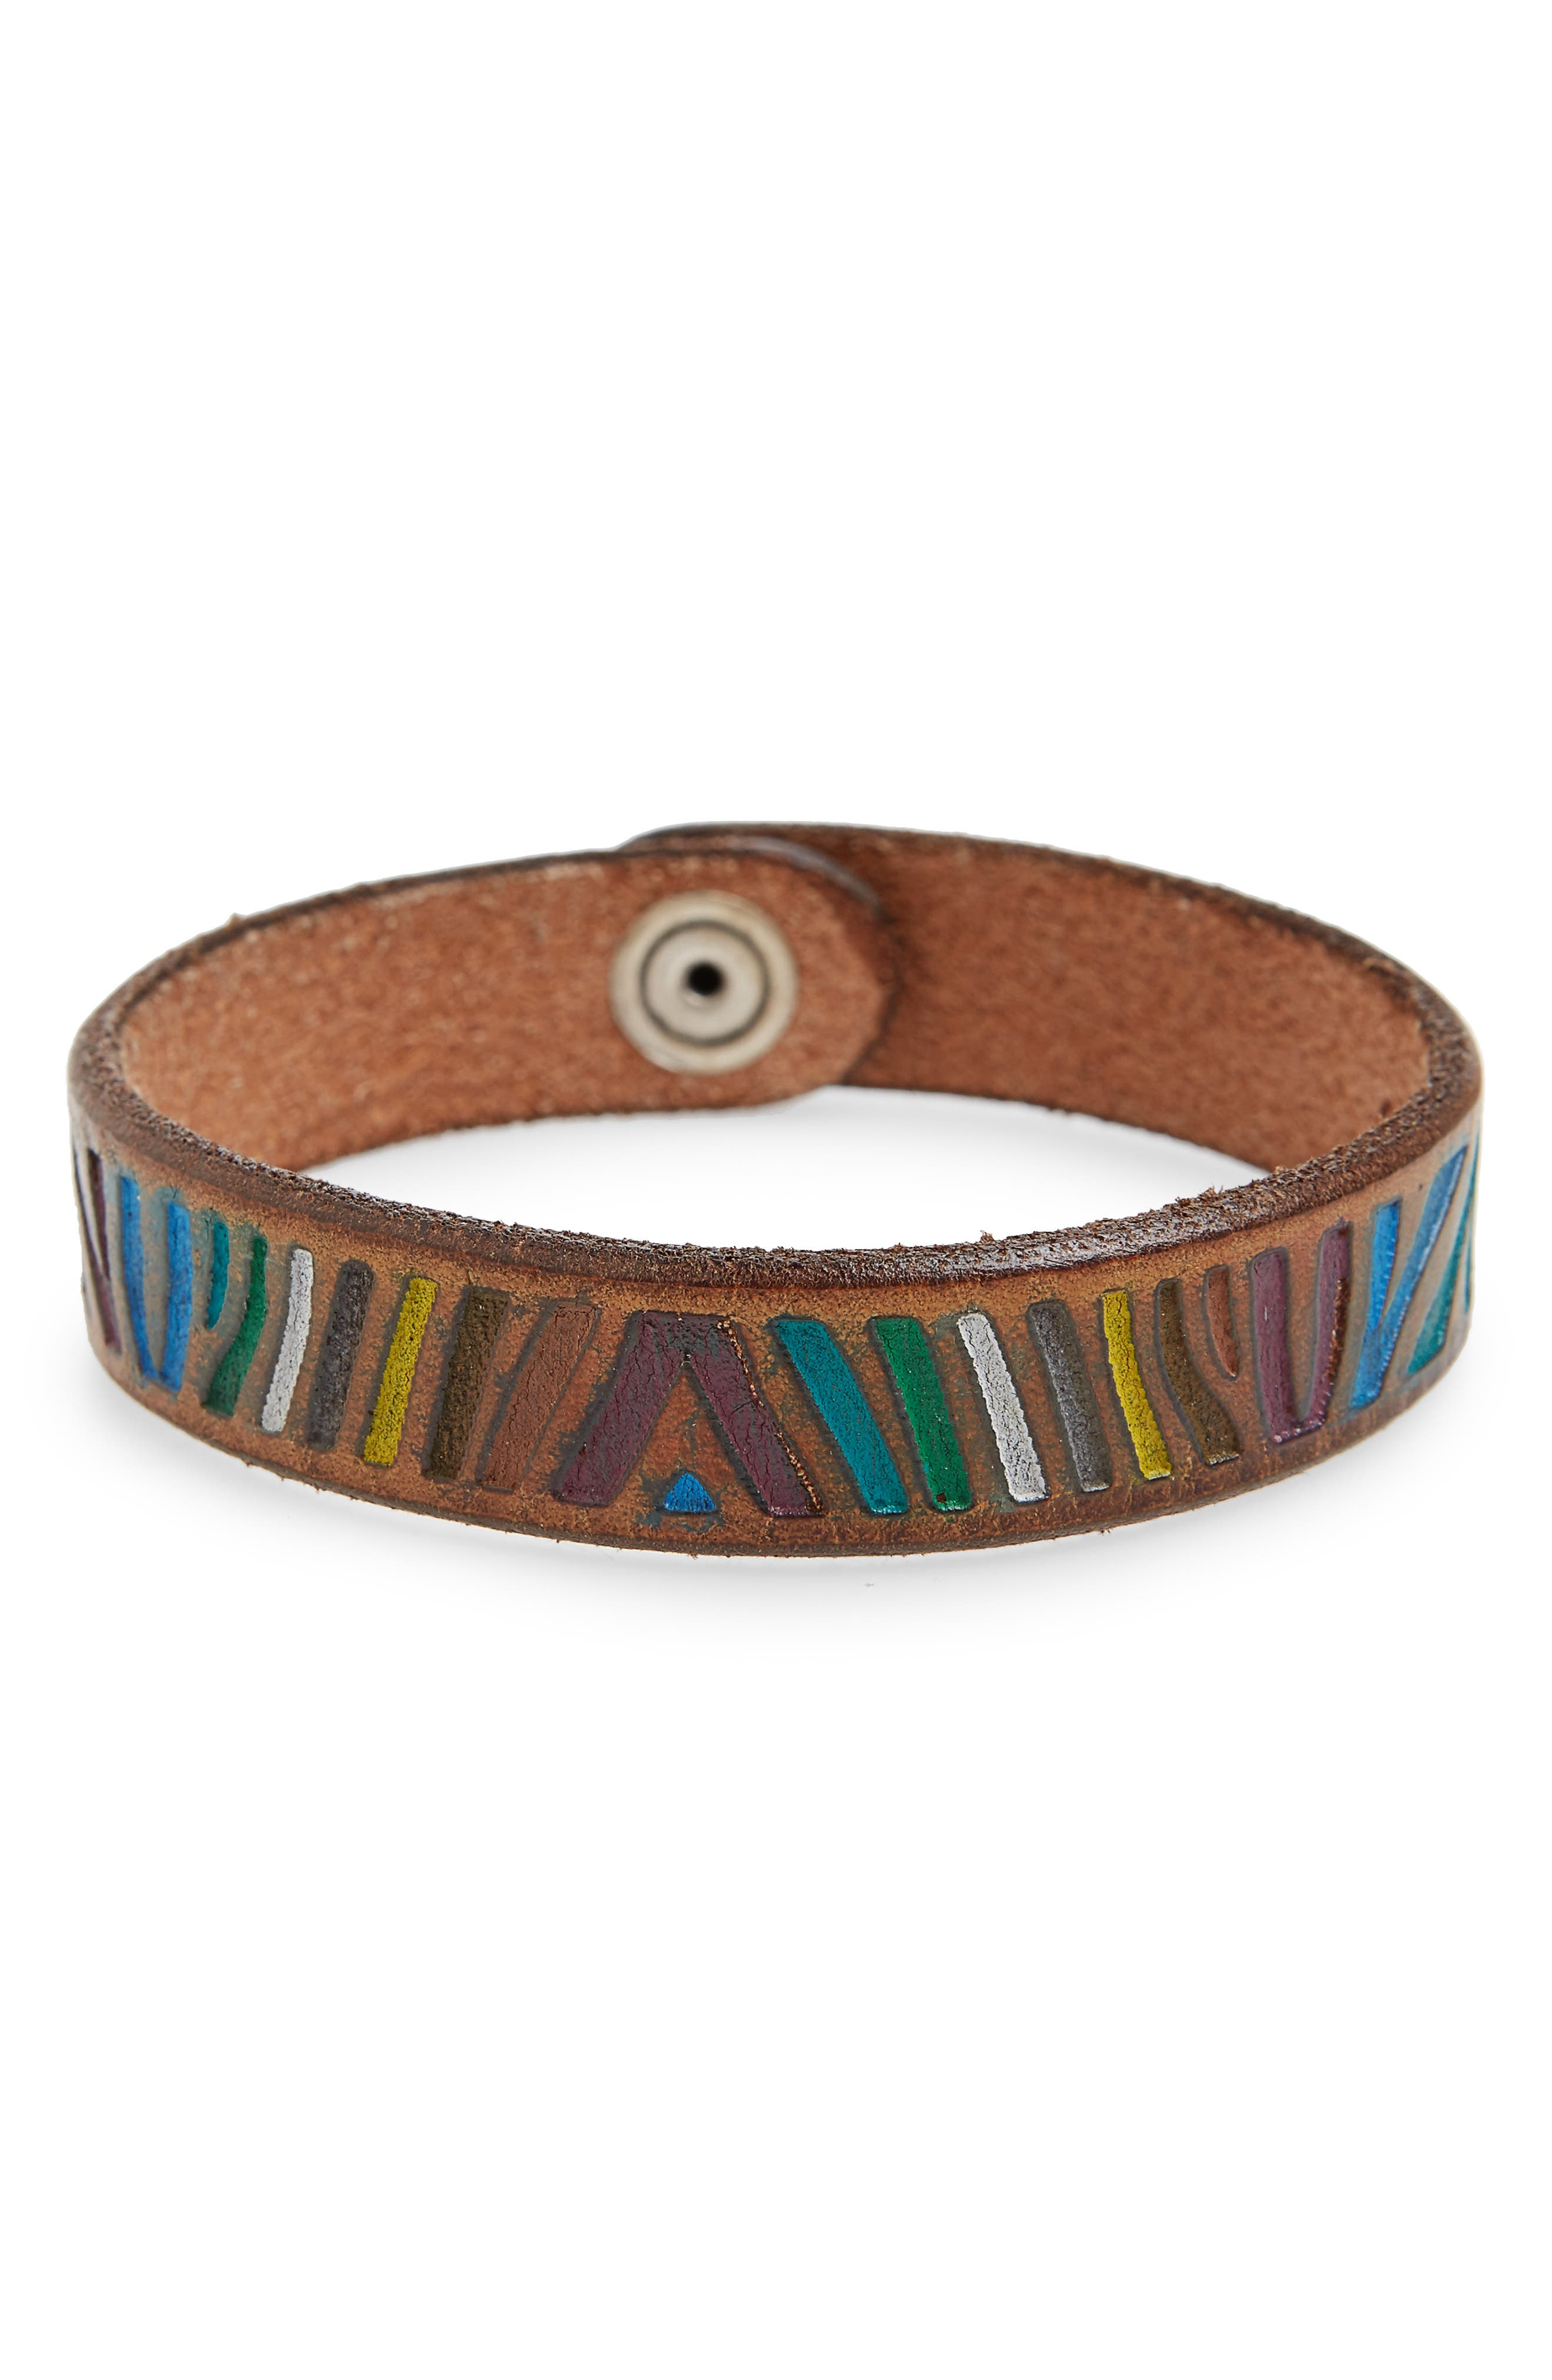 Zebra Leather Bracelet,                             Main thumbnail 1, color,                             200